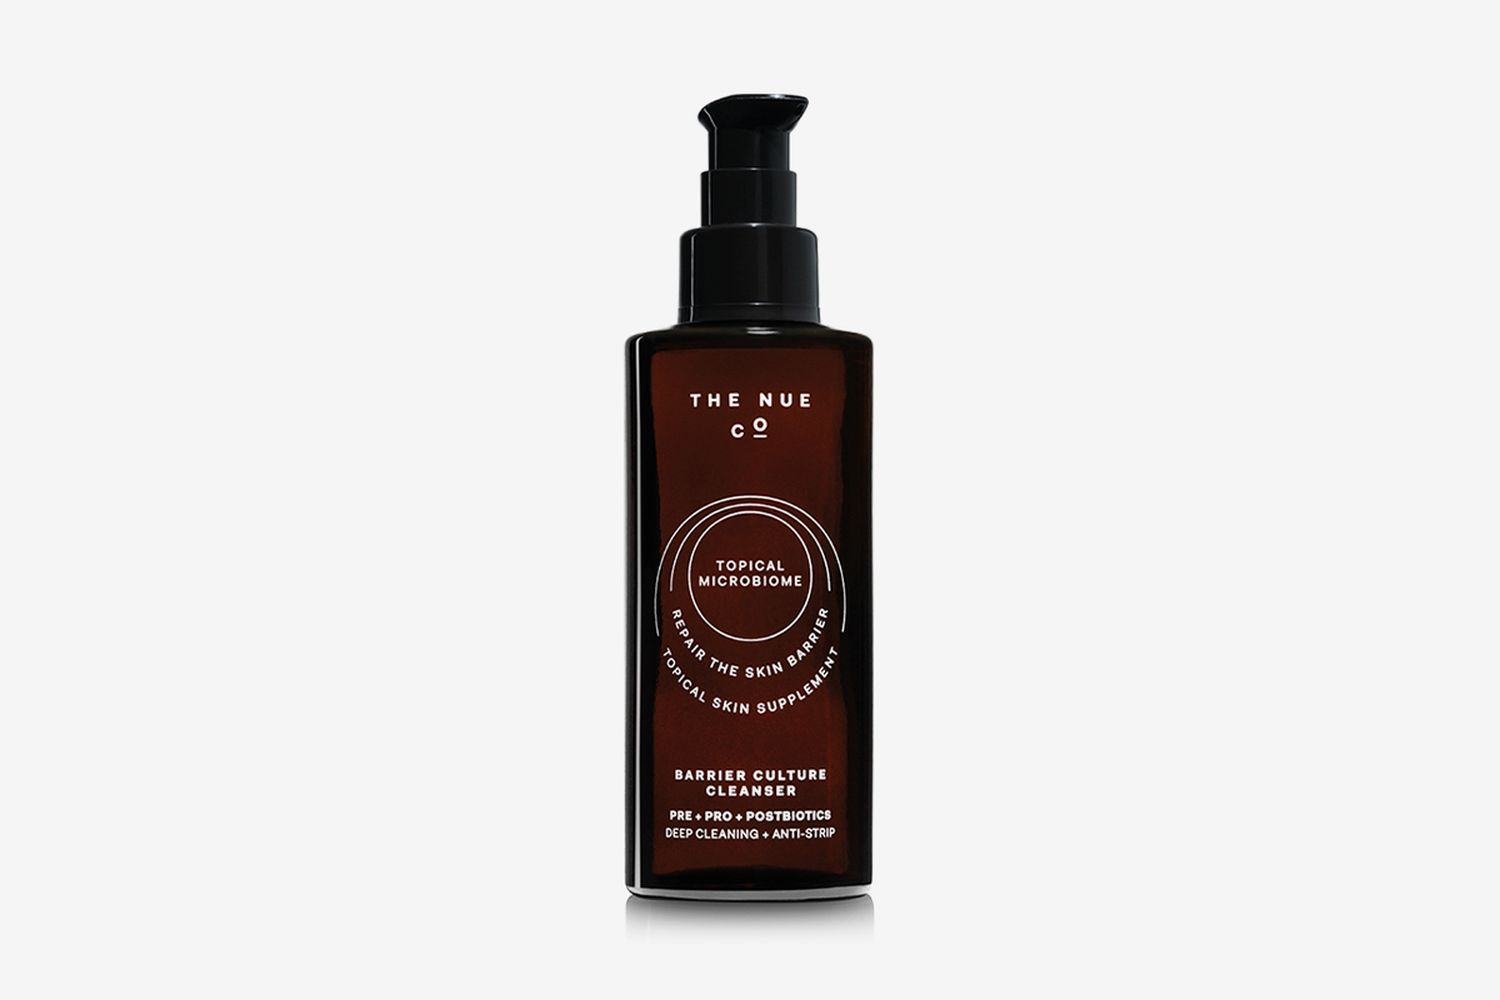 BARRIER CULTURE Cleanser